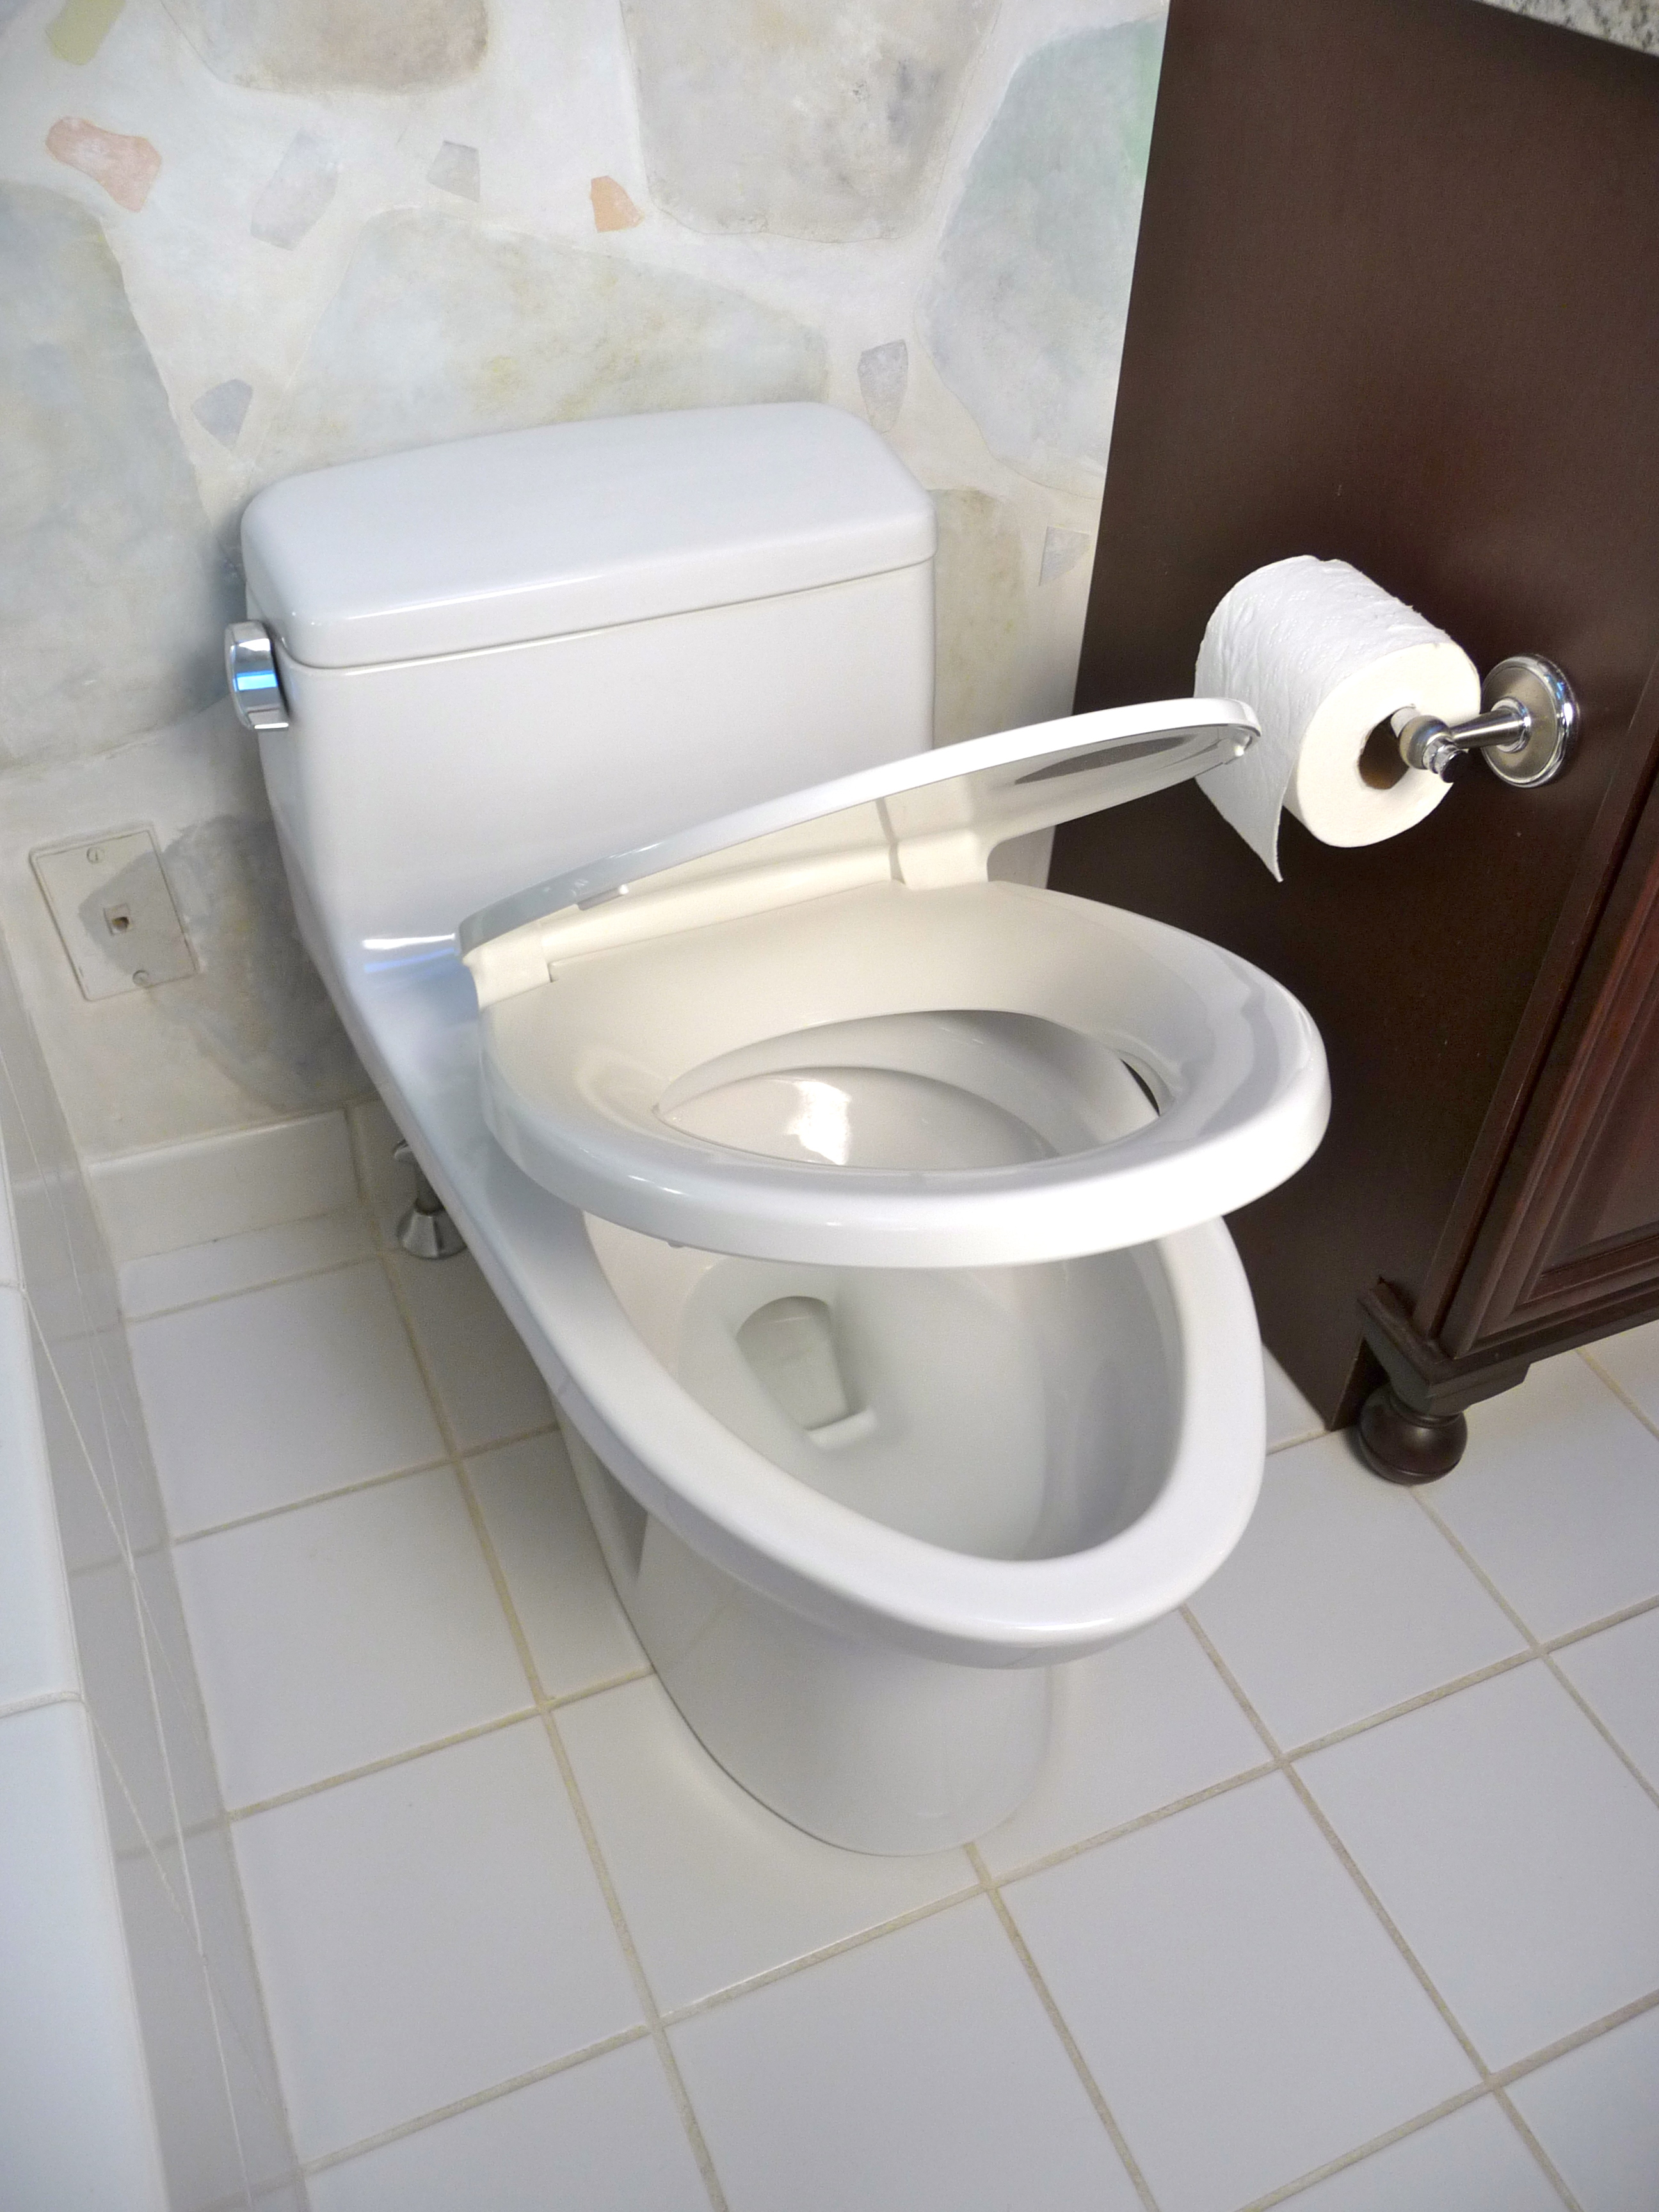 Best Flushing, 1 28 GPM Toto Toilets Eco Supreme on white ceramics floor plus rolled tissue for inspiring toilet ideas